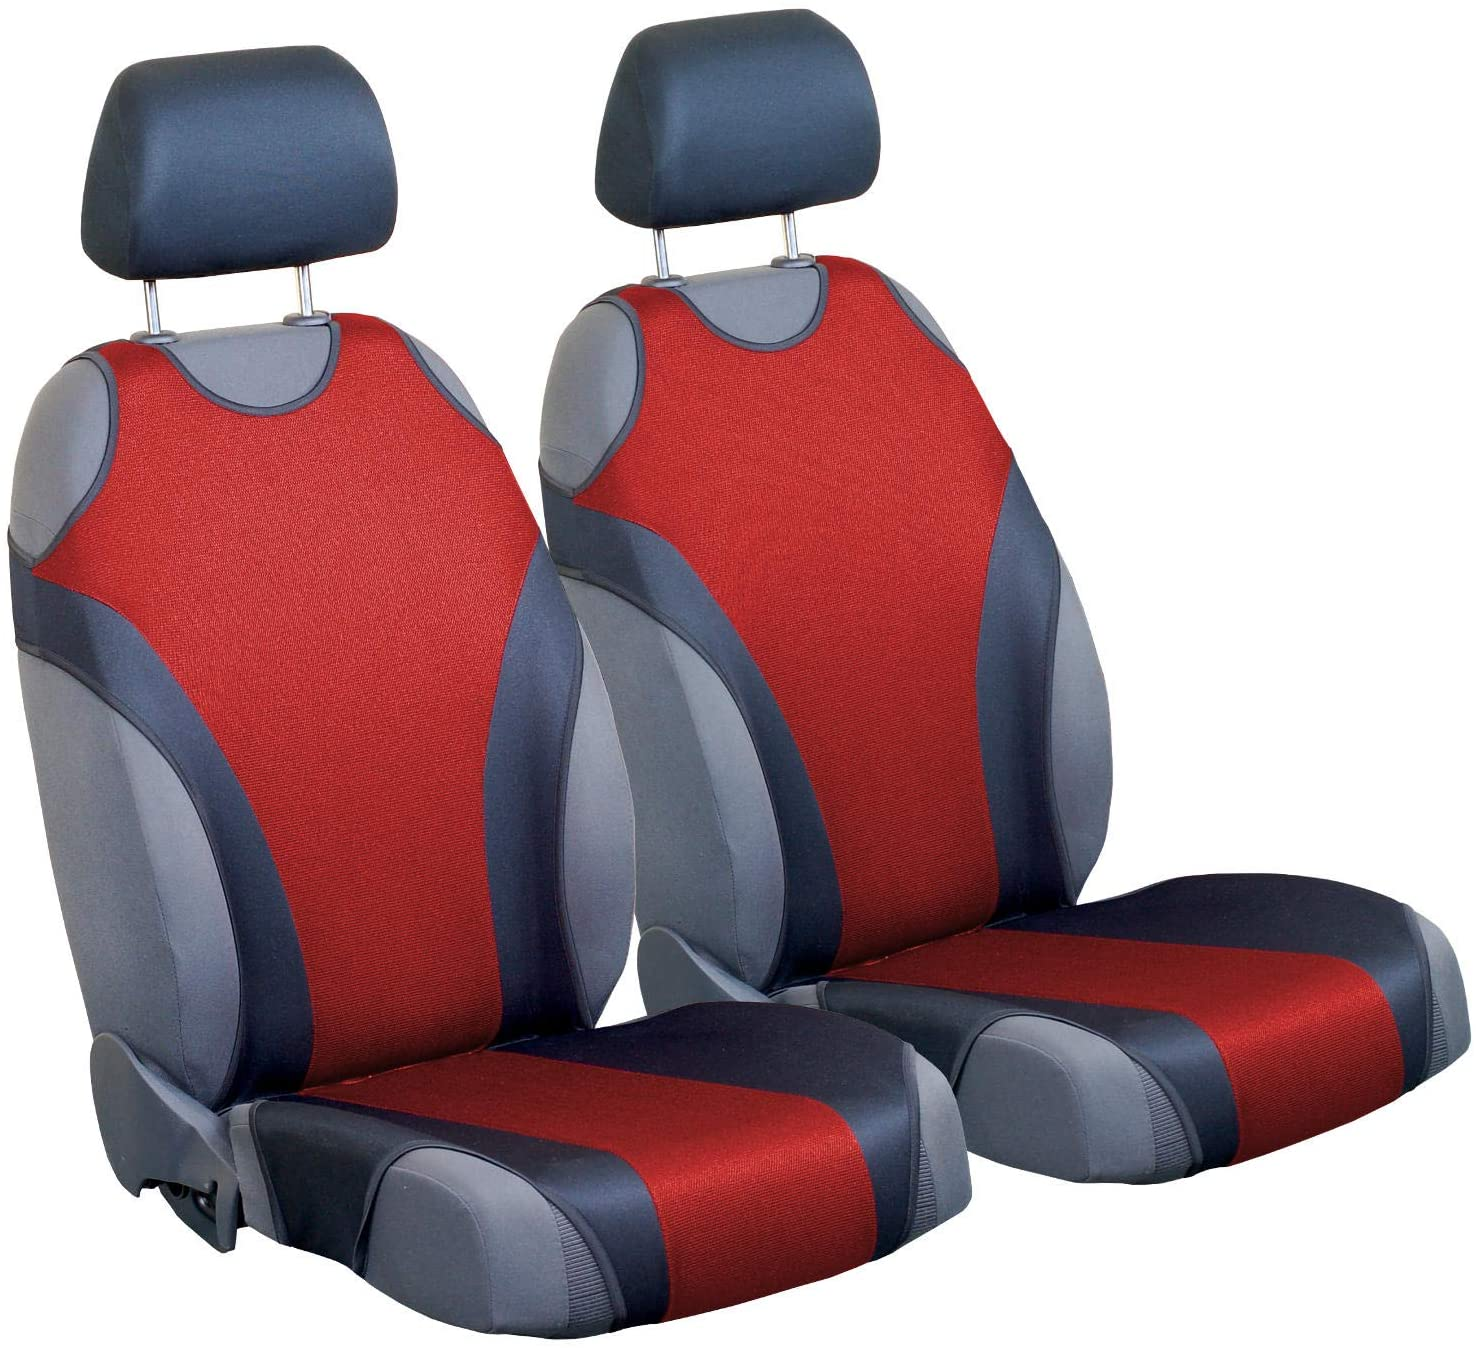 Zakschneider Car Seat Covers for X5 - Front Seats - Color Premium Red & Black